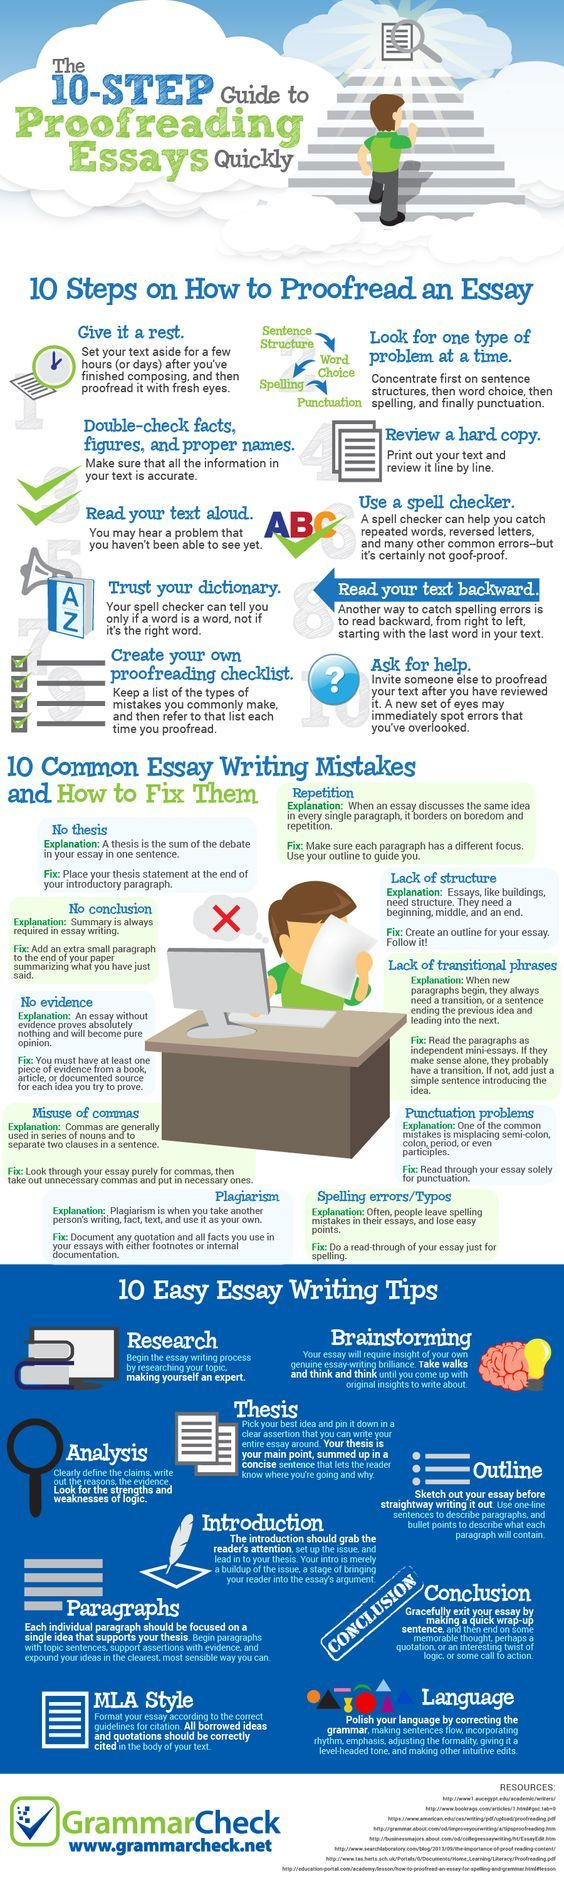 25+ best Writing an essay ideas on Pinterest | How to write essay ...